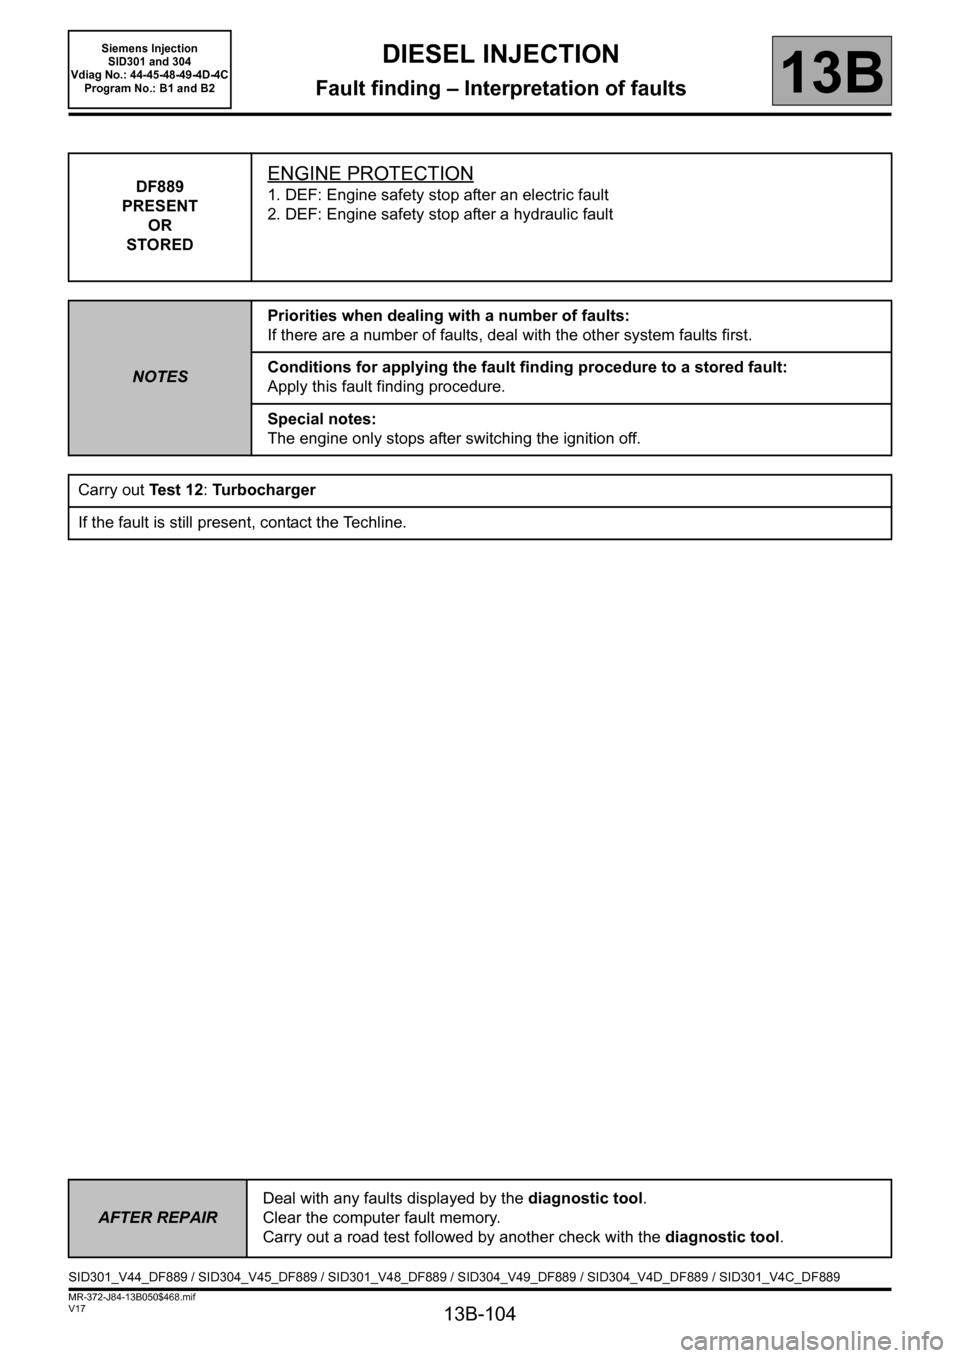 RENAULT SCENIC 2011 J95 / 3.G Engine And Peripherals Siemens Injection Workshop Manual, Page 104